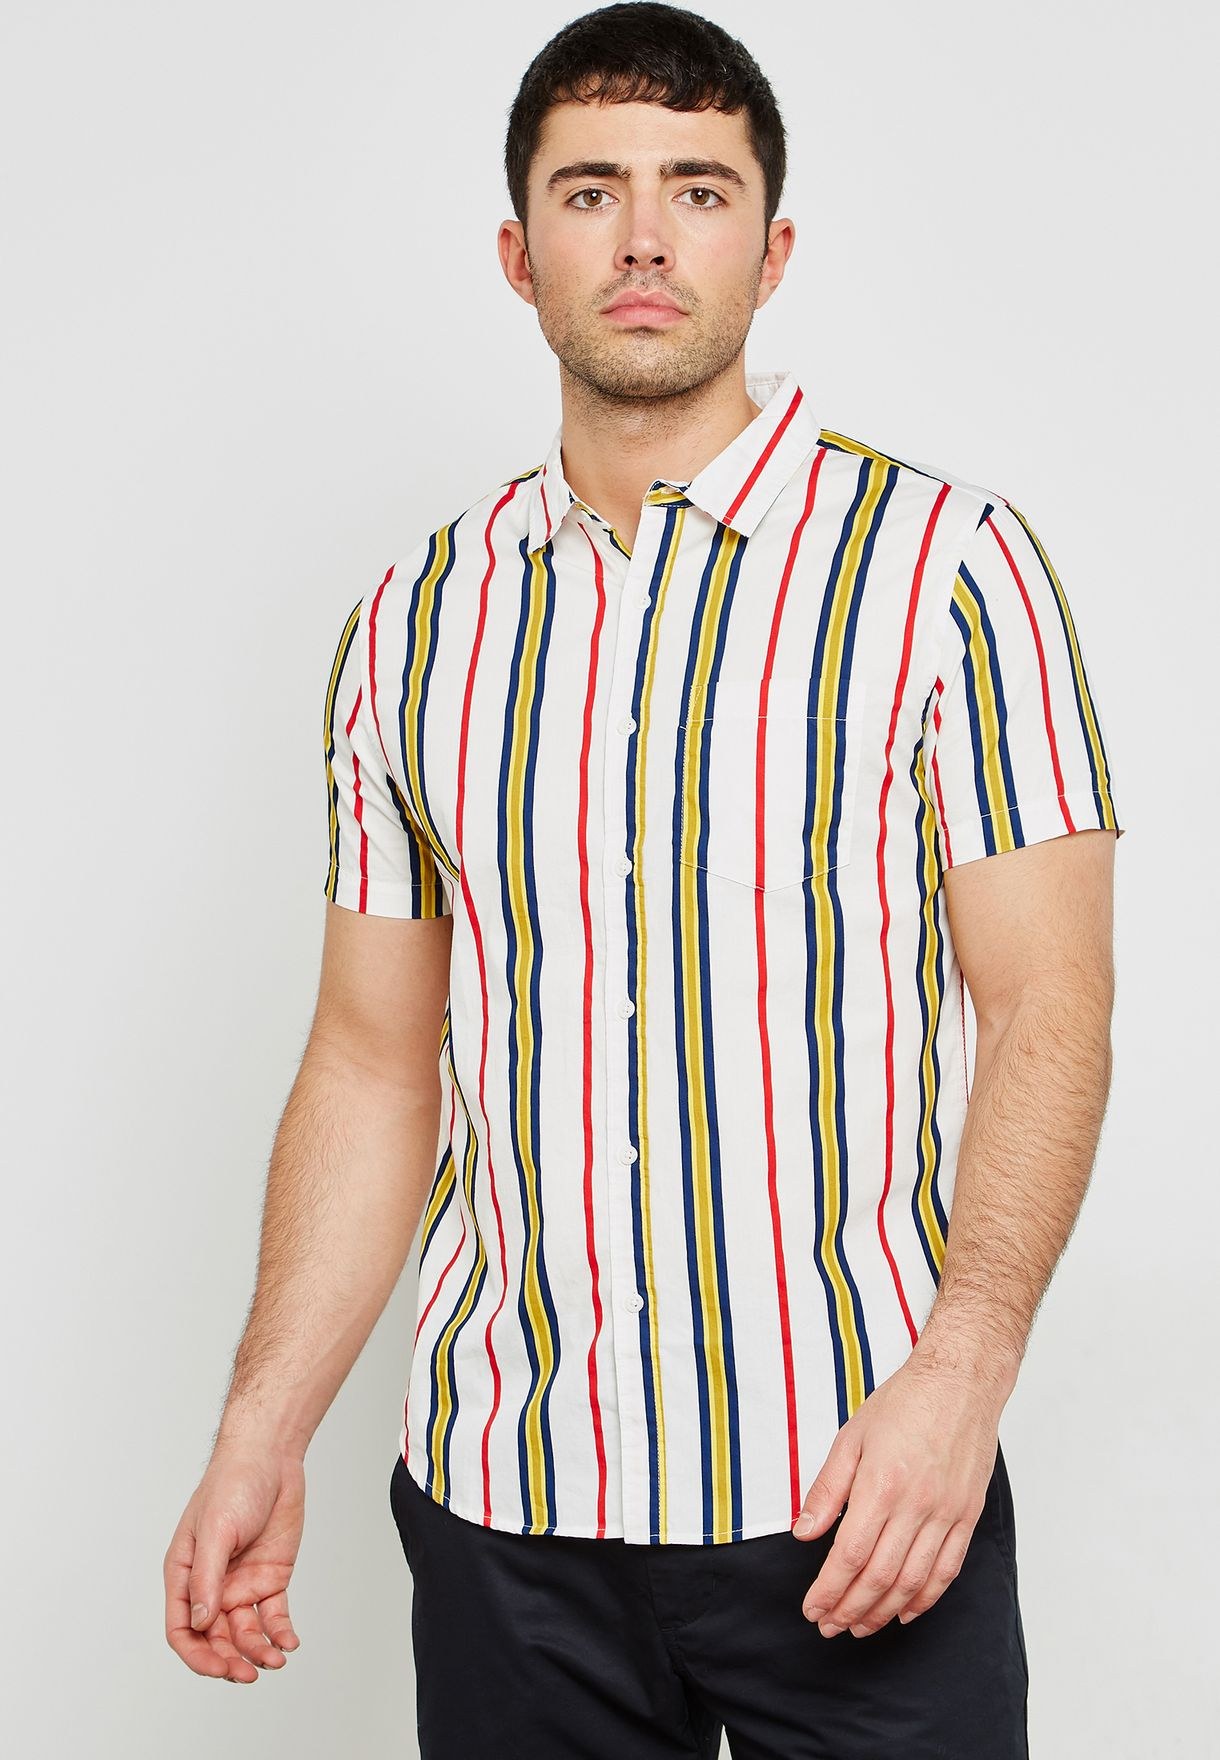 dfe682735e Shop Forever 21 stripes Striped Classic Shirt 291513 for Men in UAE ...